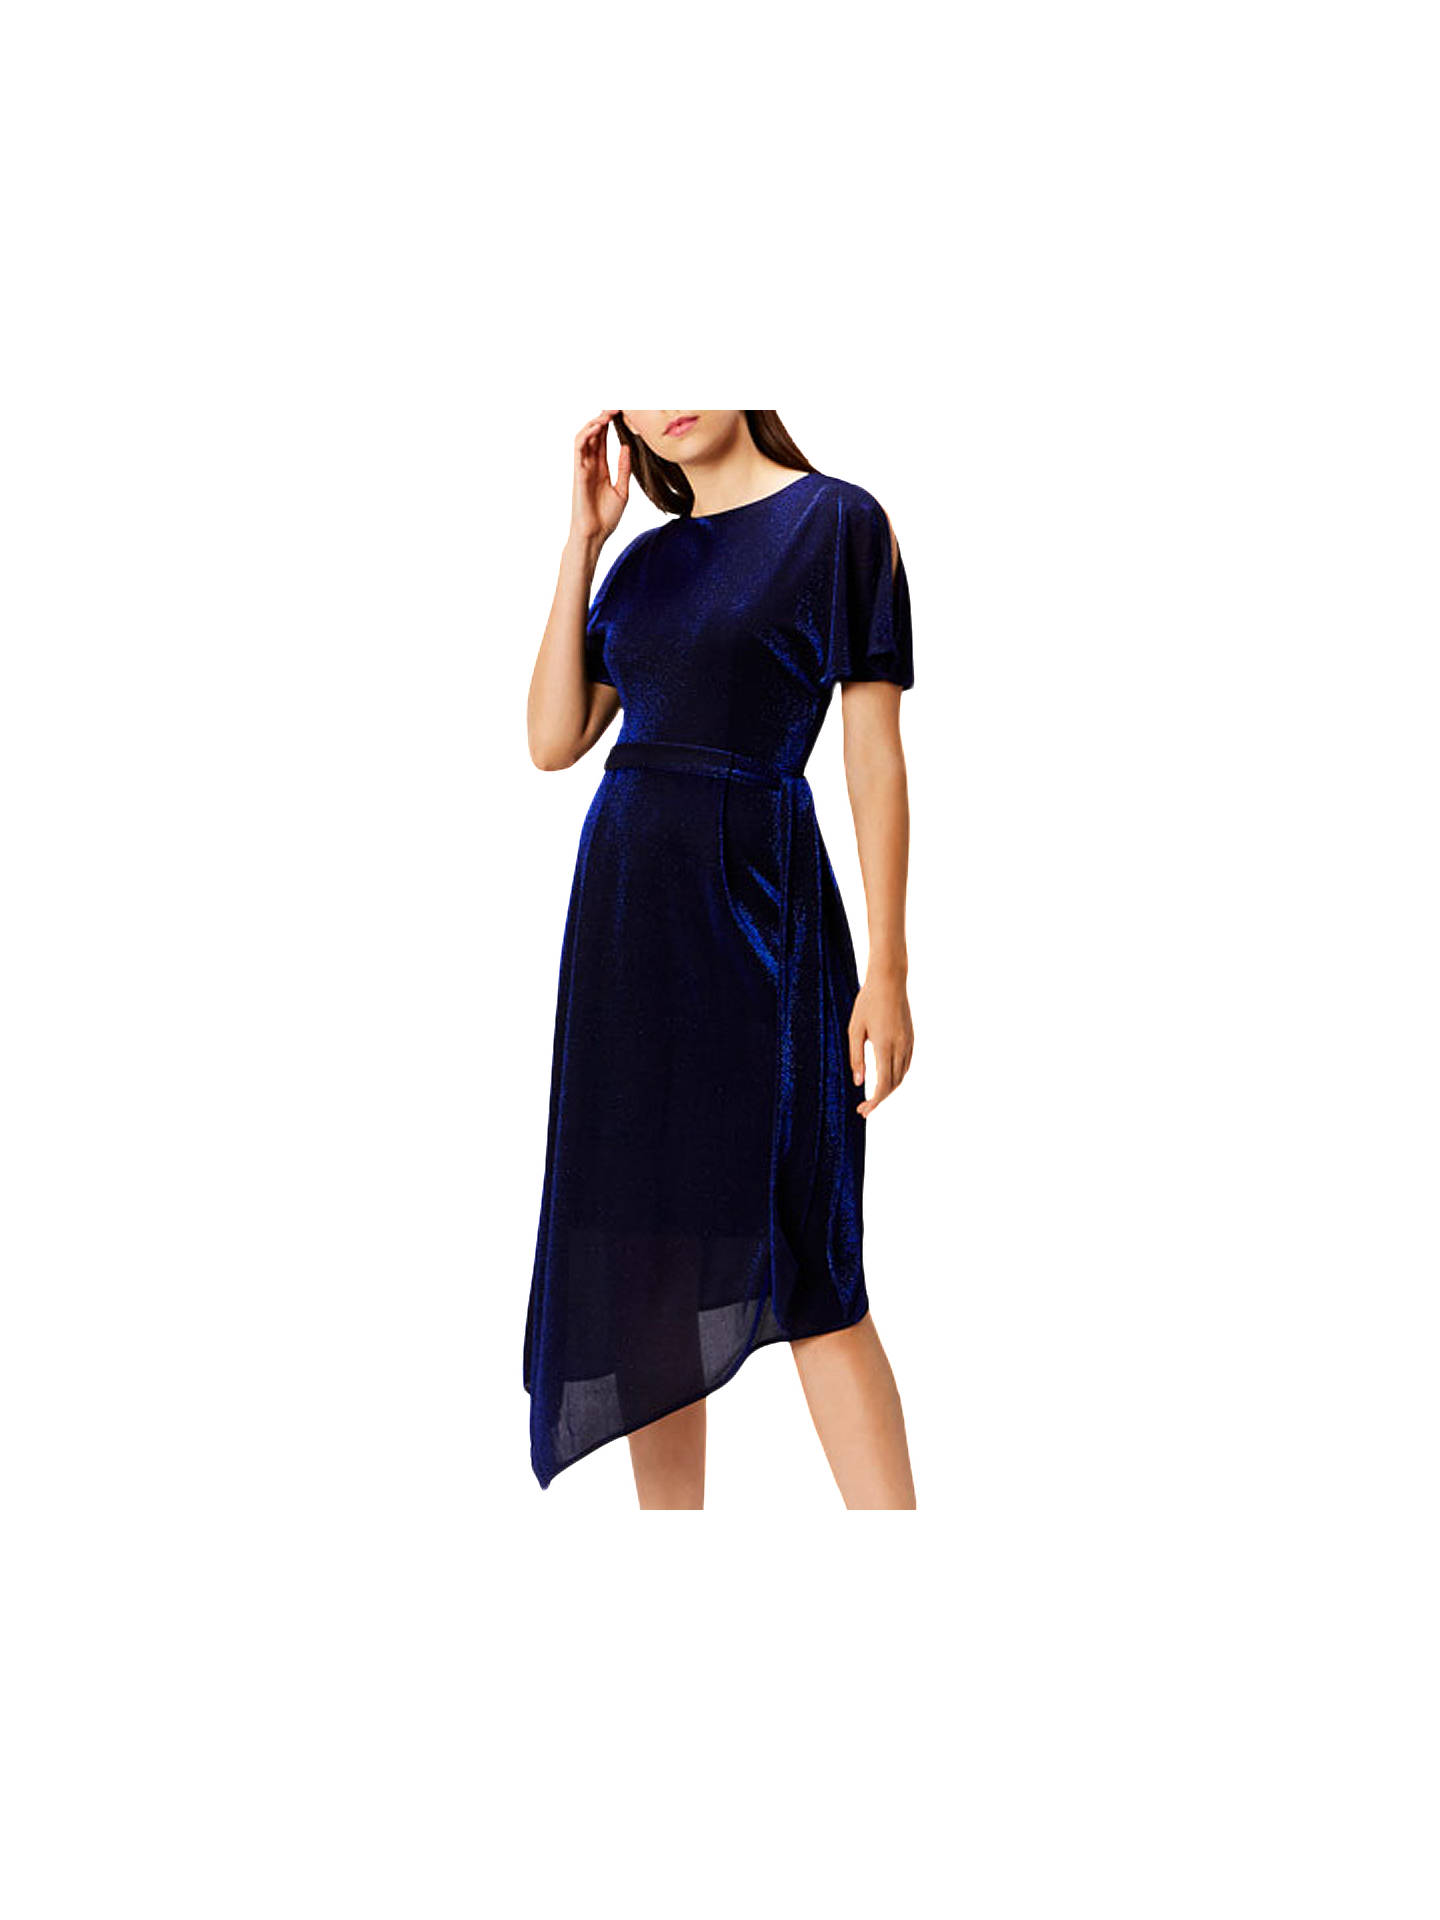 BuyCoast Jemma Sparkle Jersey Dress, Cobalt Blue, 6 Online at johnlewis.com